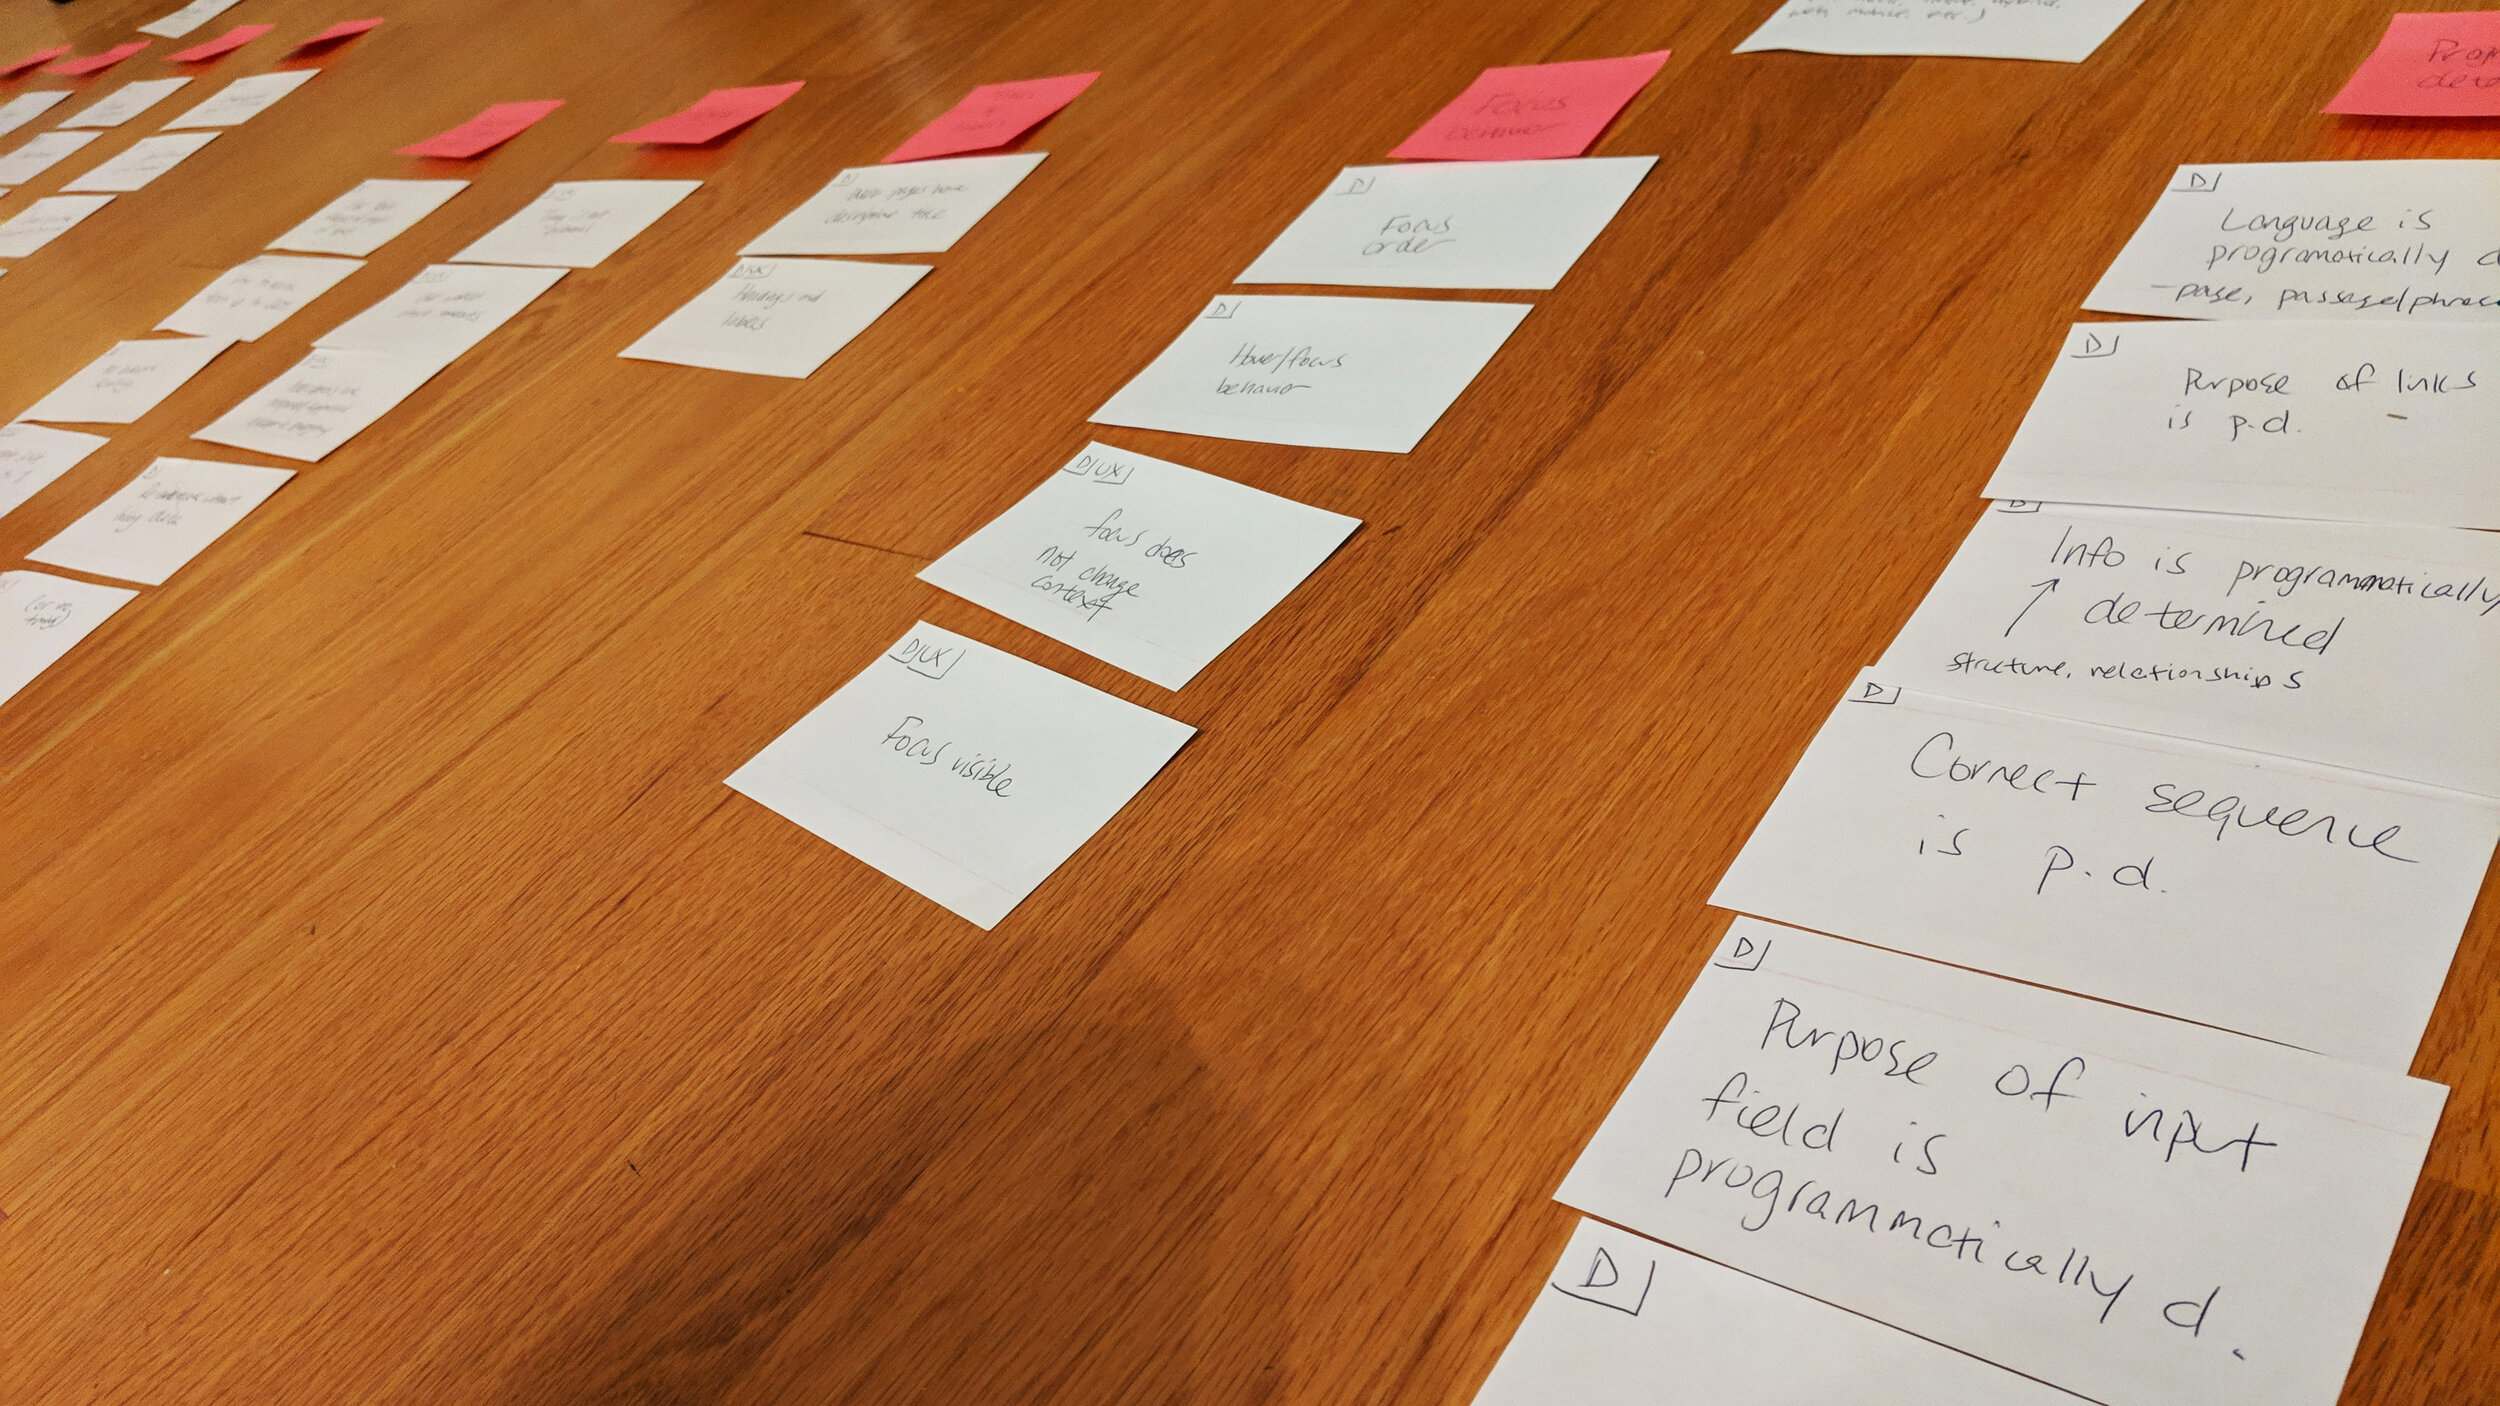 Photo of card sorting exercise laid out on hardwood floors. The pink post-it notes represent grouping themes and the white cards represent individual success criteria. Text that is visible to sighted people include: focus order, hover/focus behavior, focus does not change context, focus visible, correct sequence is p.d., purpose of input field is programmatically d.